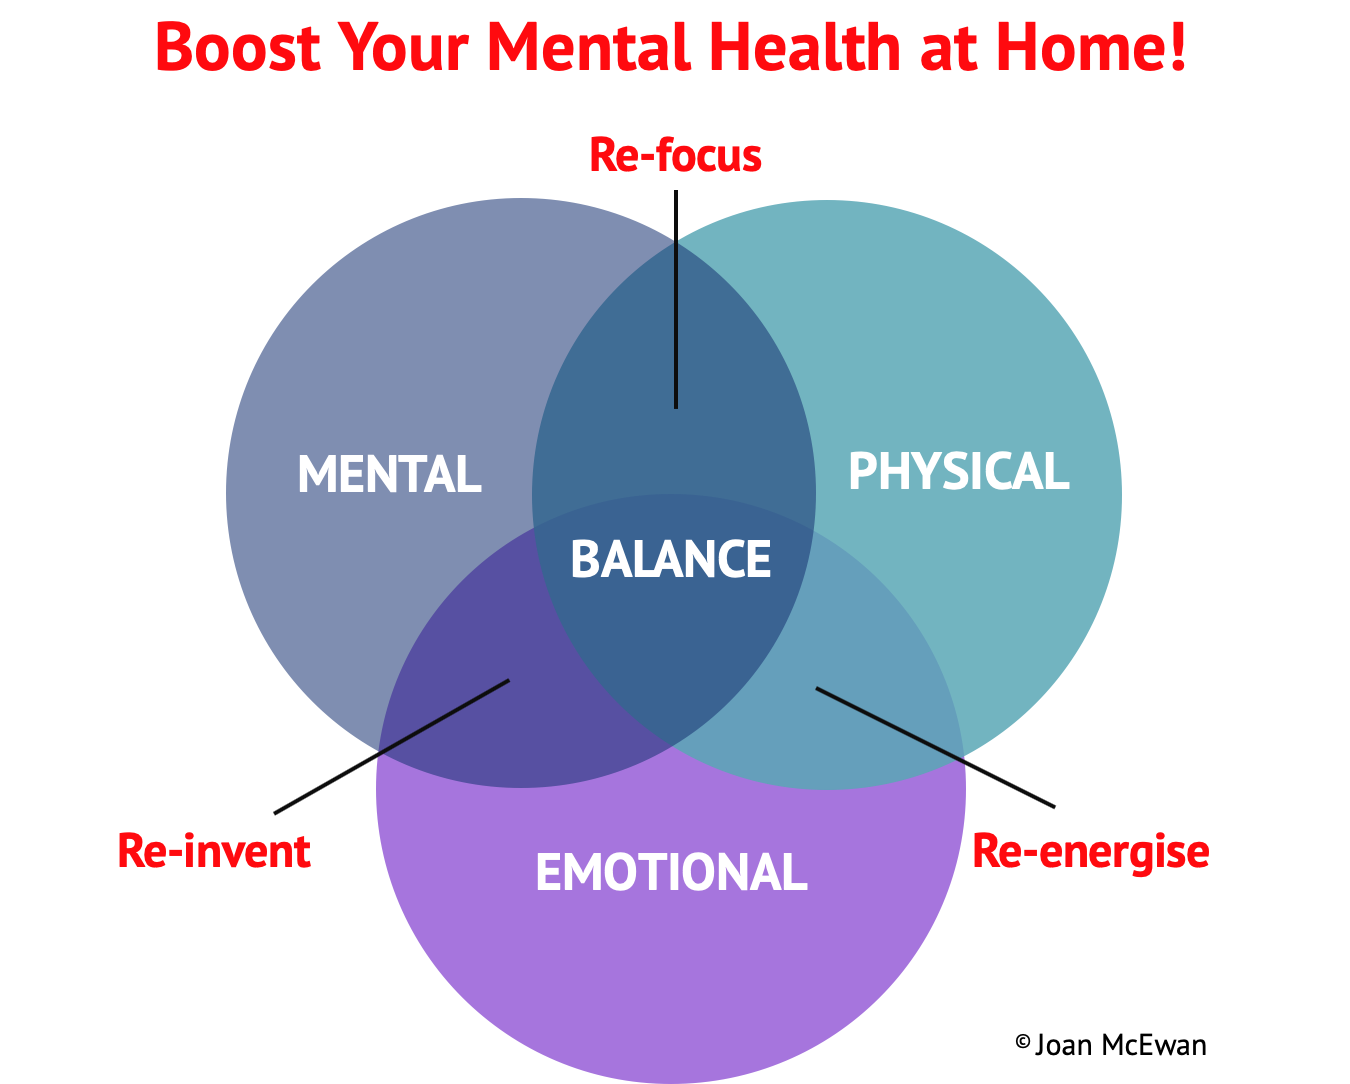 BOOST YOUR MENTAL HEALTH AT HOME!